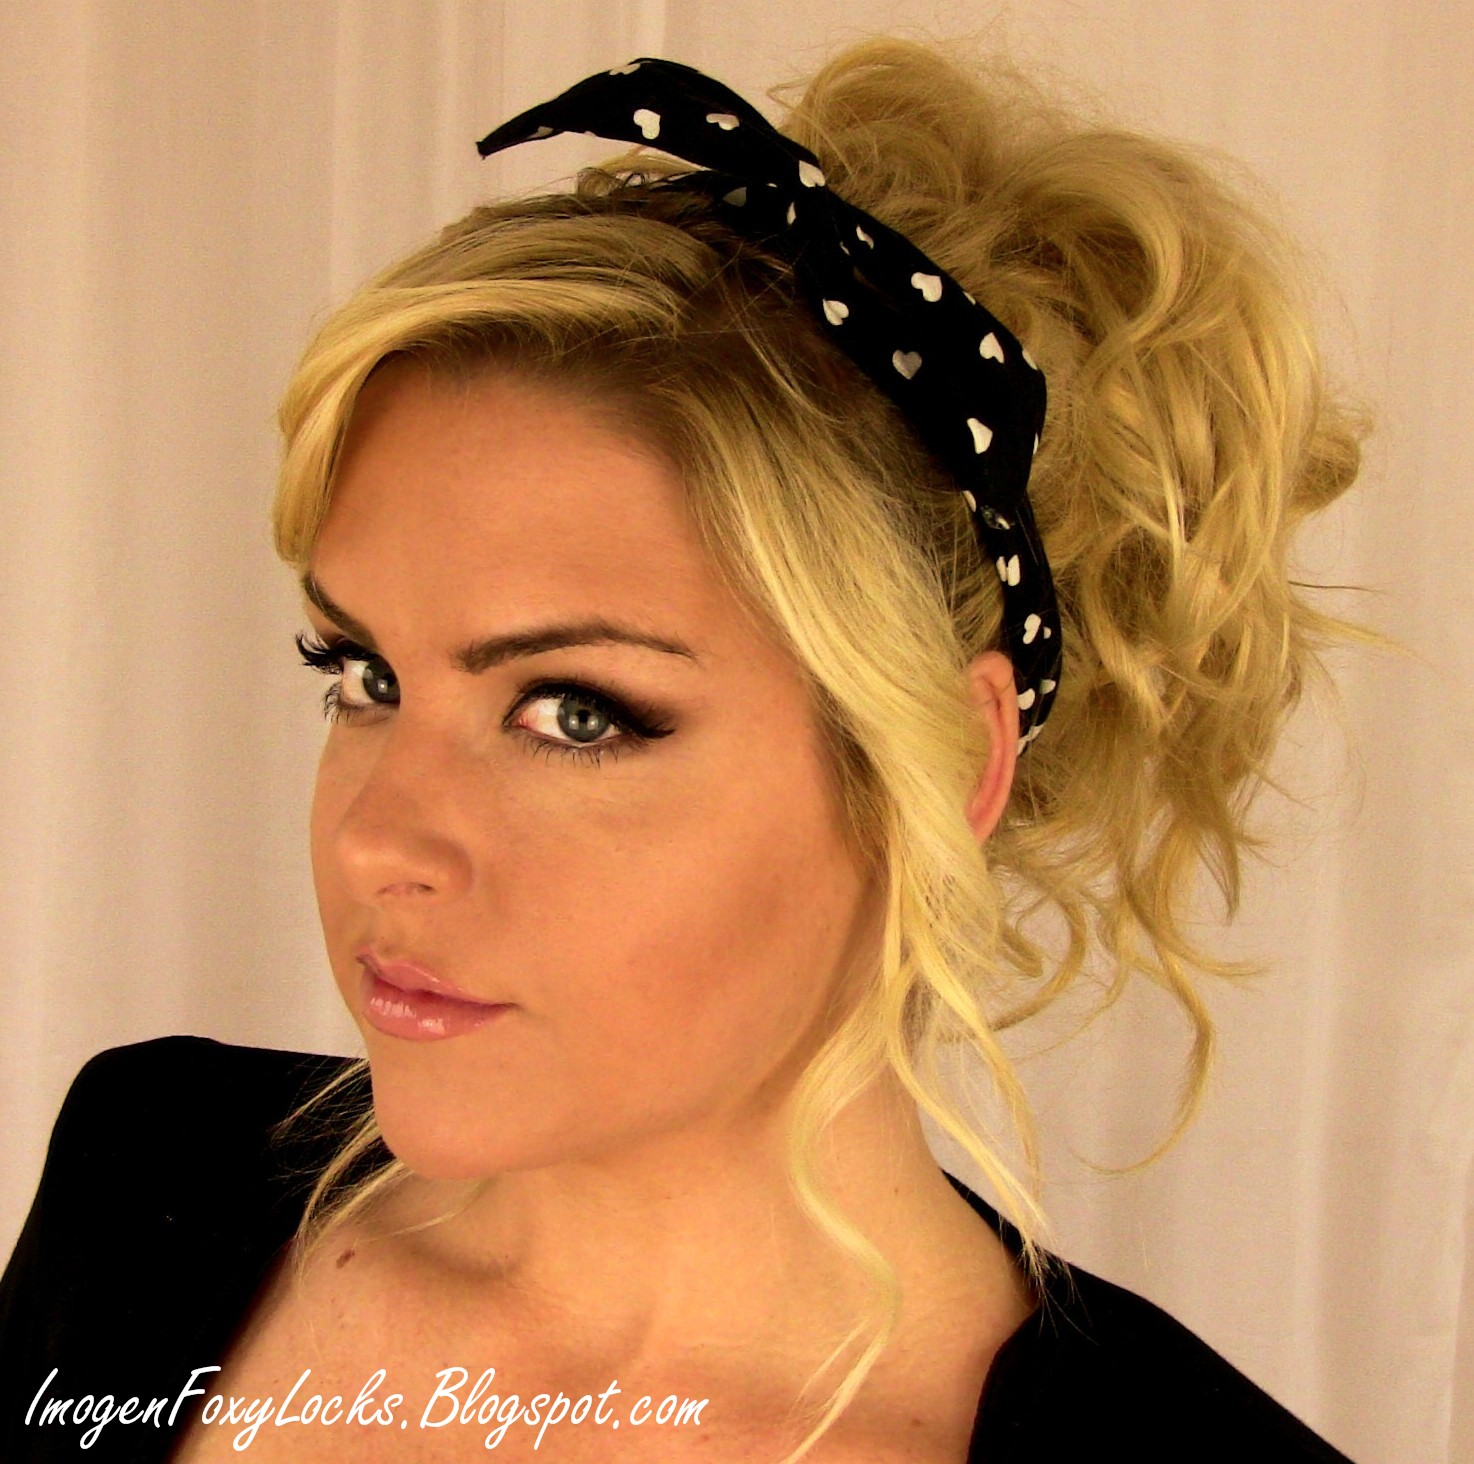 Imogen Foxy Locks Rihanna Inspired 80s Curly Up Do Hair Style Tutorial